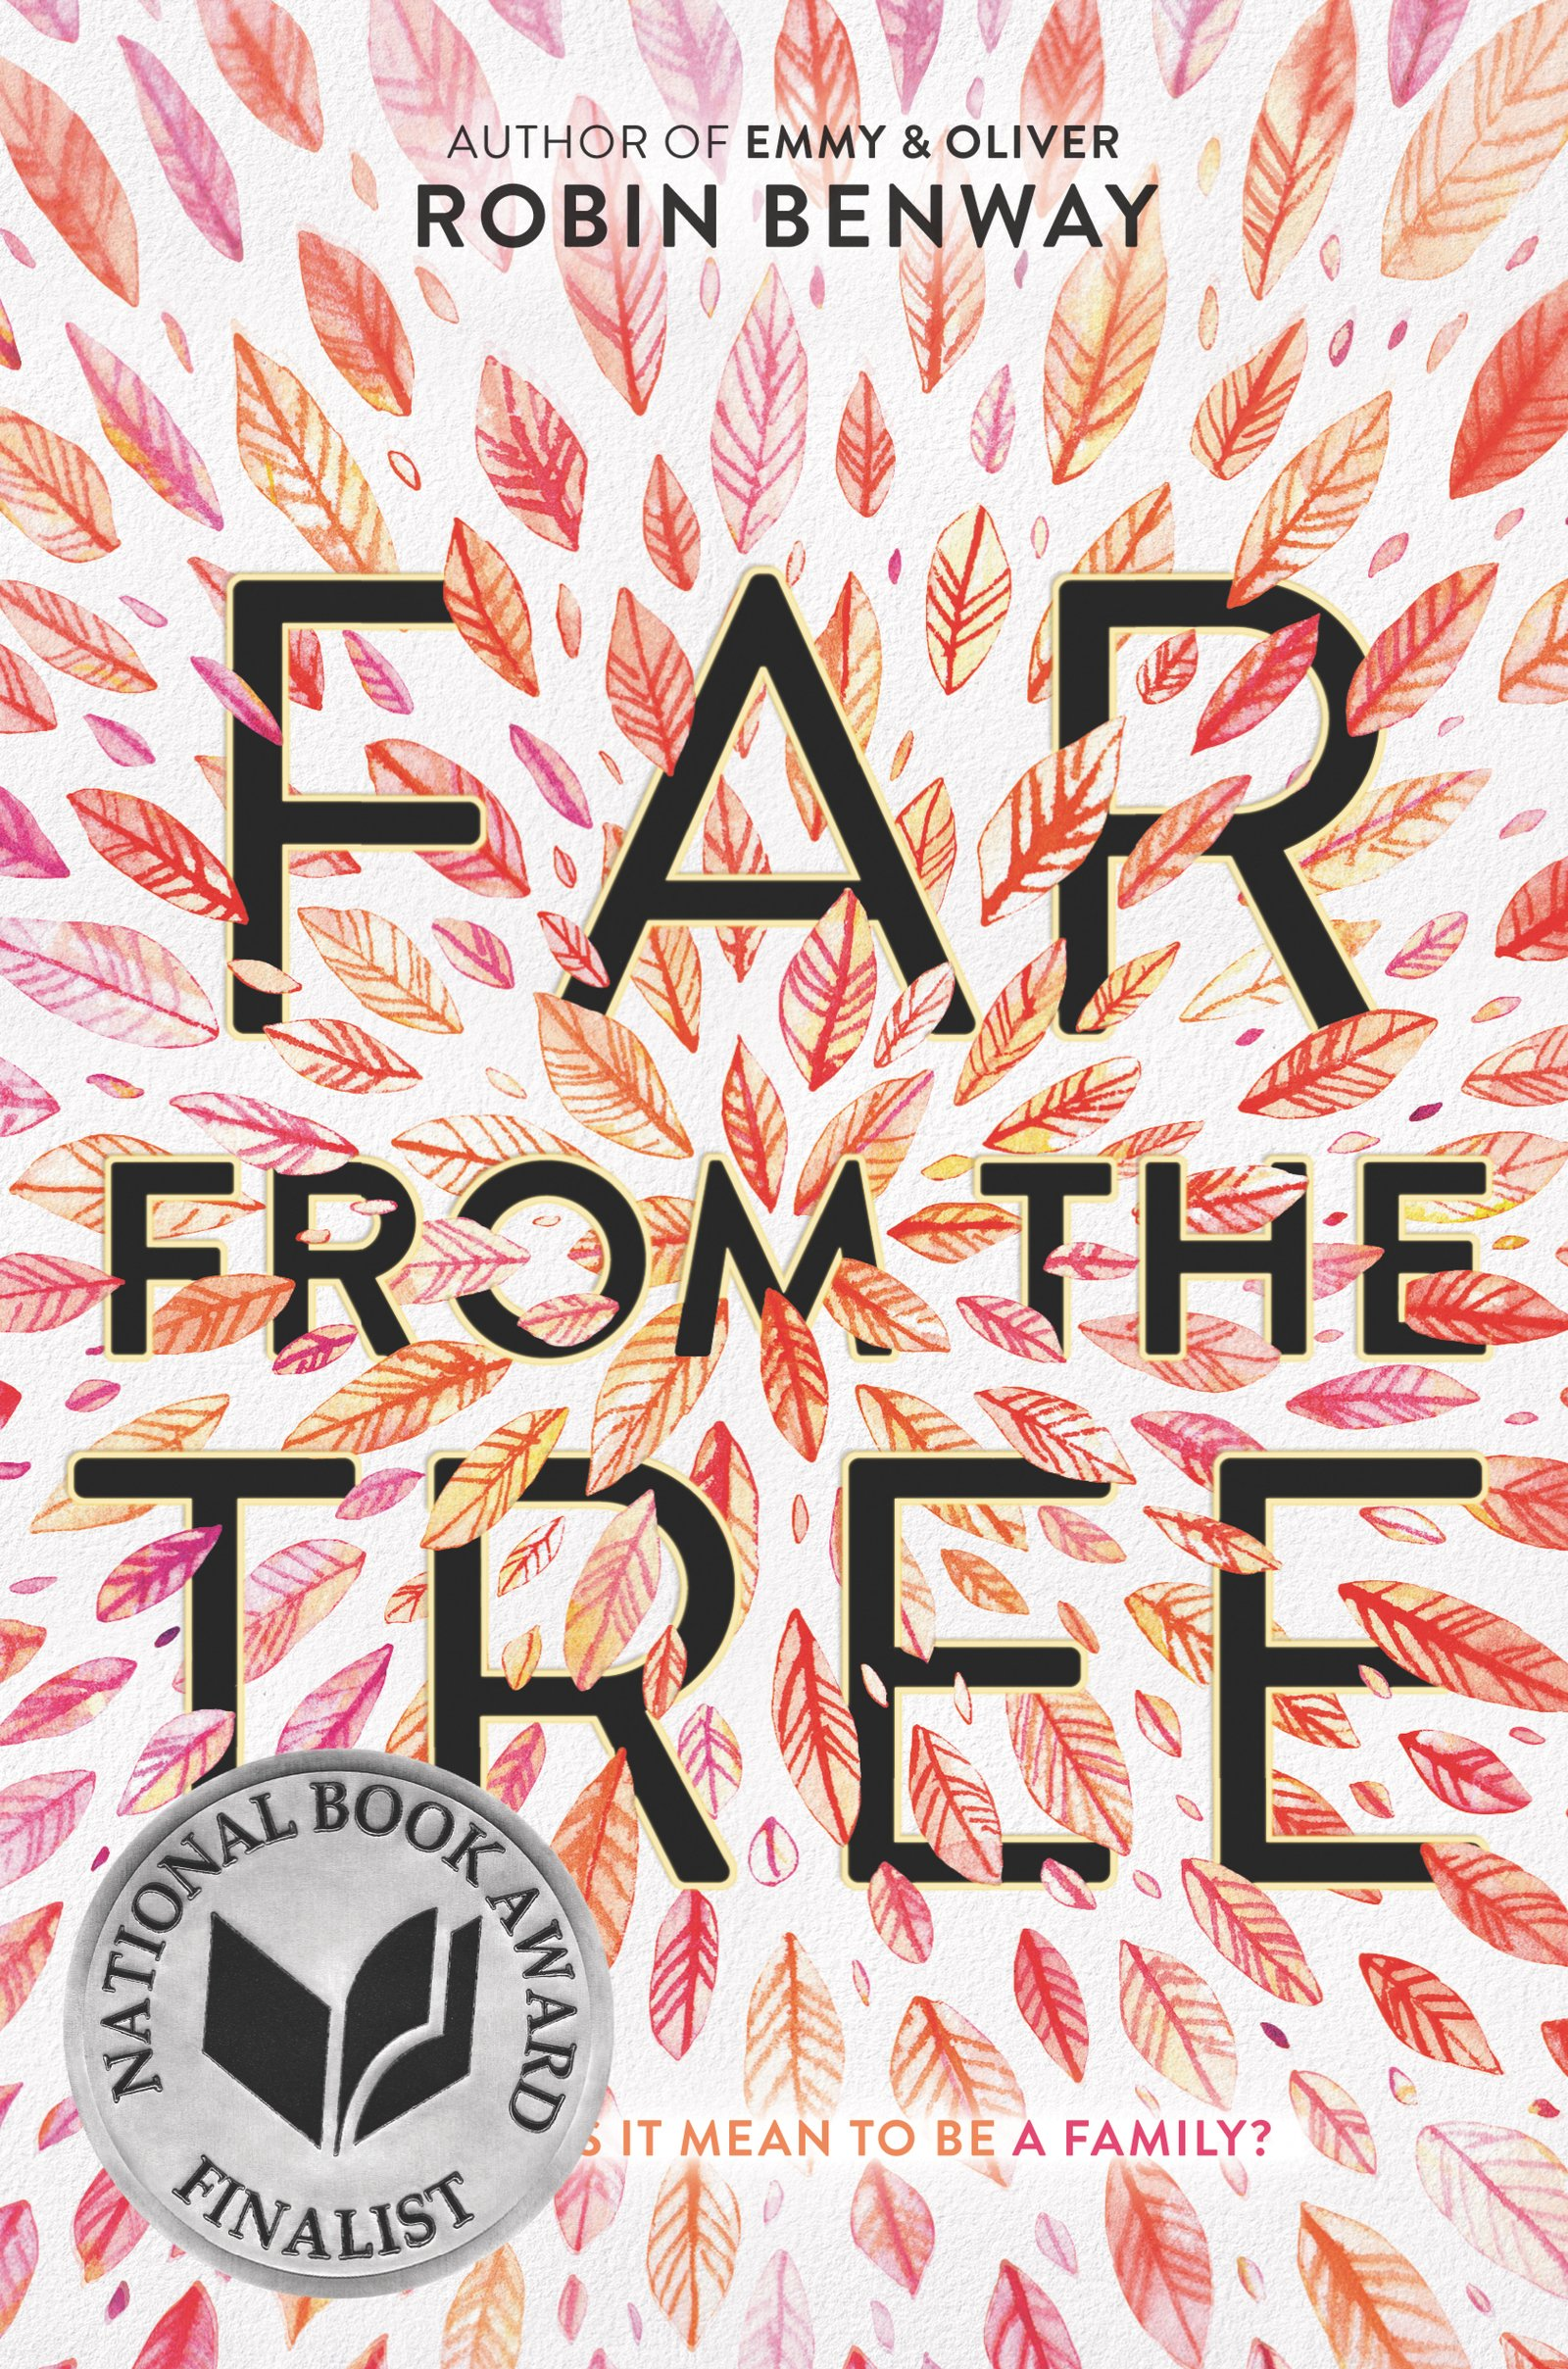 Far From the Tree by Robin Benway (cover) Image: black text oveer an kaleidoscope of pinkish/red leaves